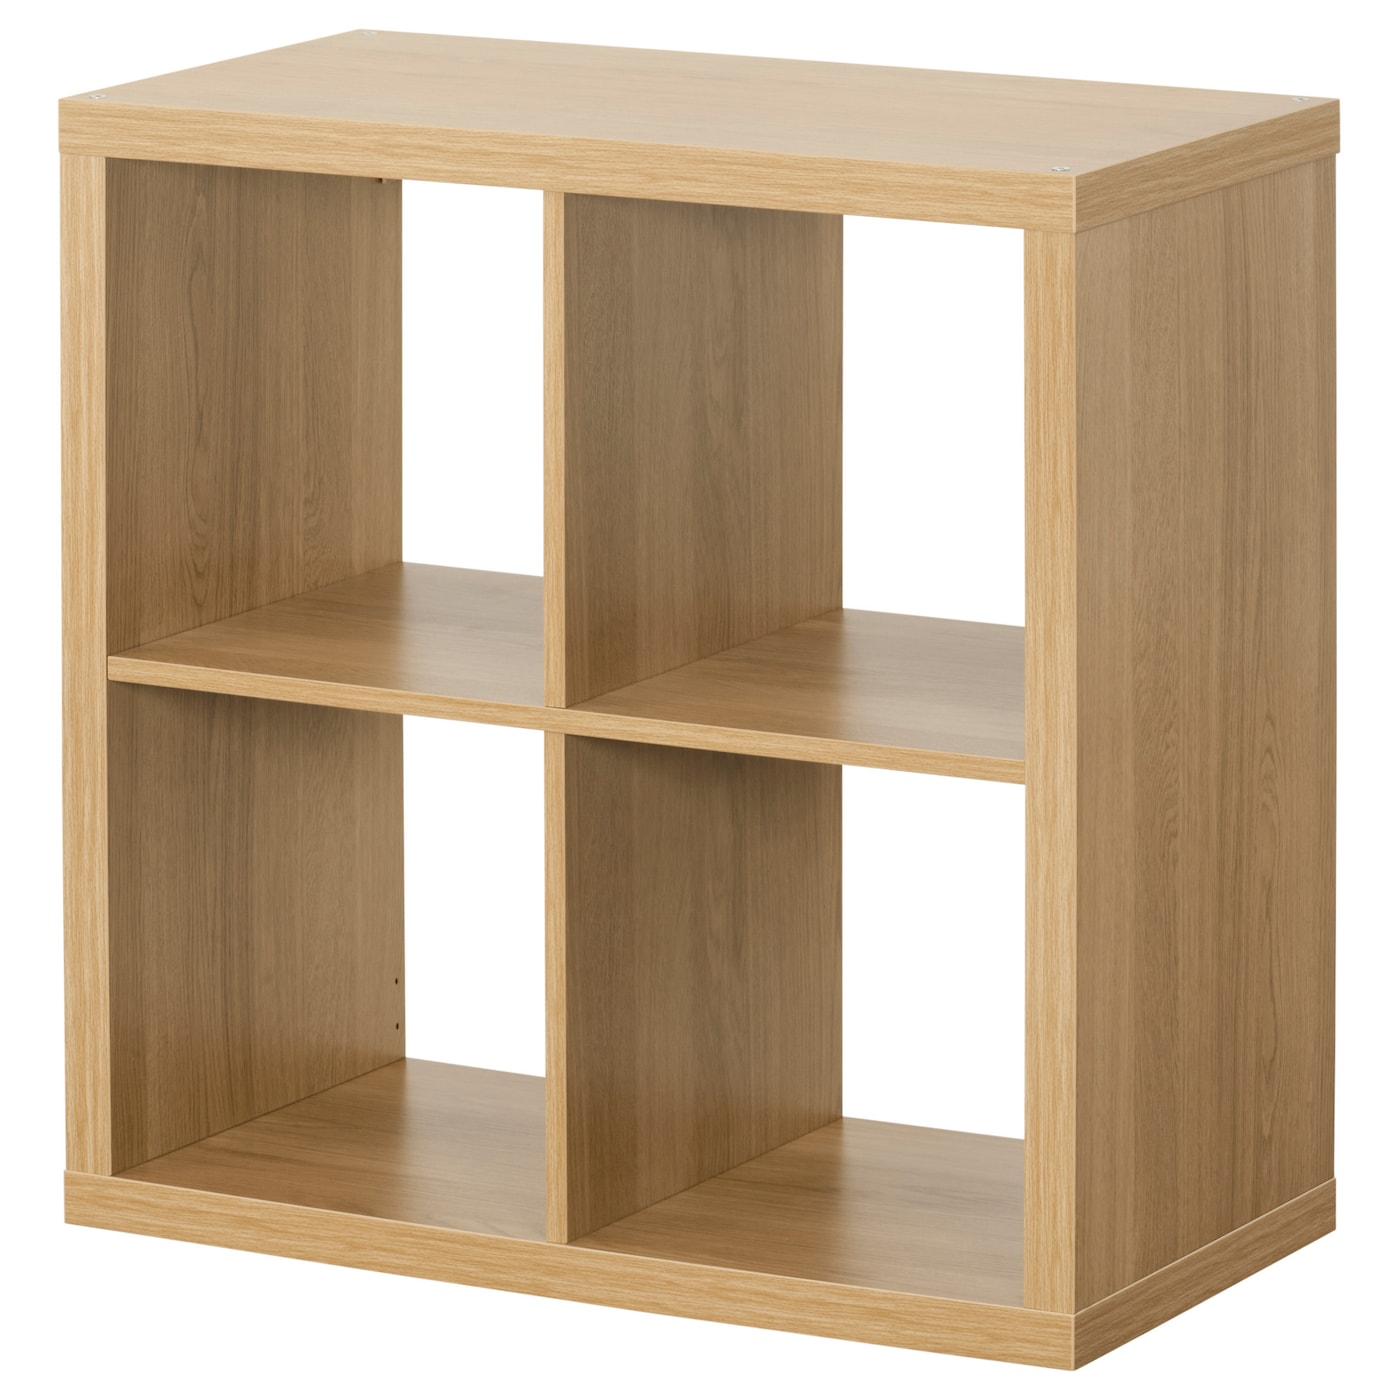 kallax shelving unit oak effect 77 x 77 cm ikea. Black Bedroom Furniture Sets. Home Design Ideas